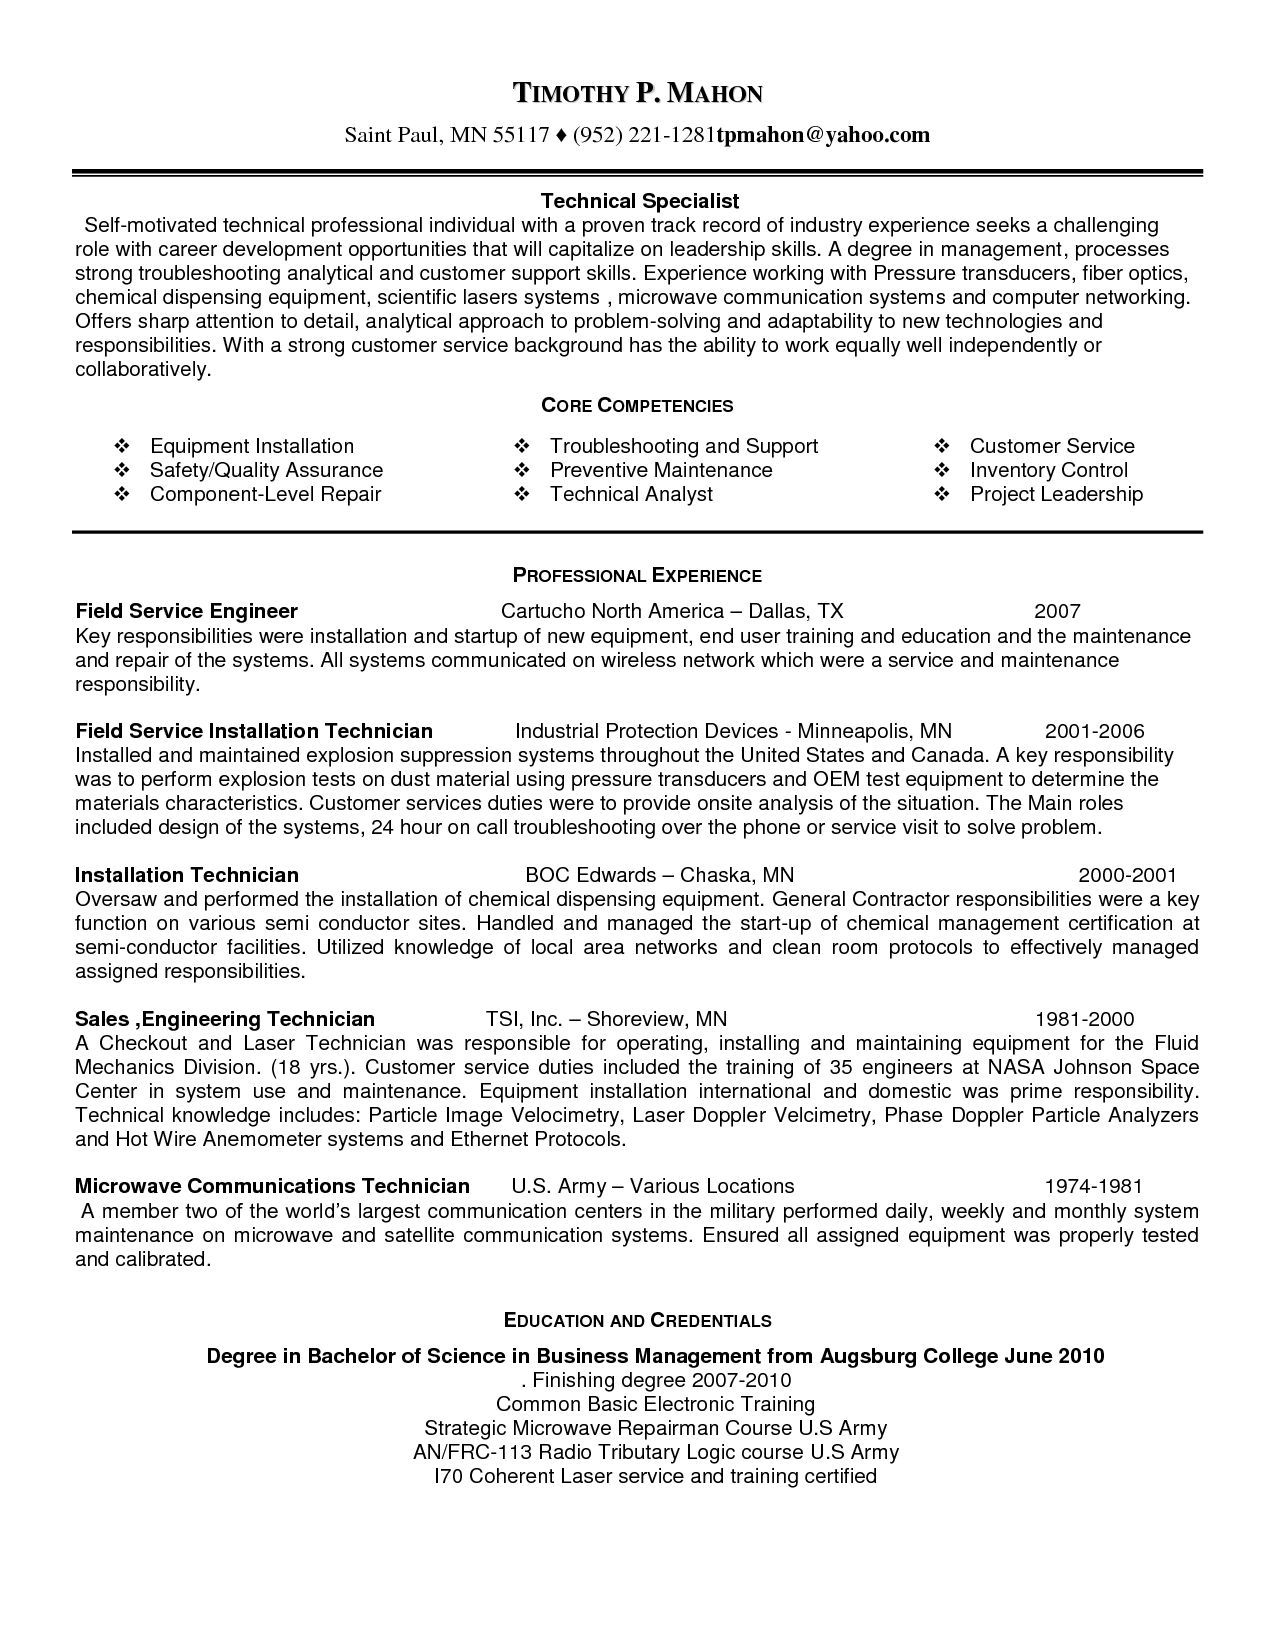 Auto Tech Resume Mesmerizing Sle Resume For Auto Mechanic 28 Images Car Mechanics Resume Sales .